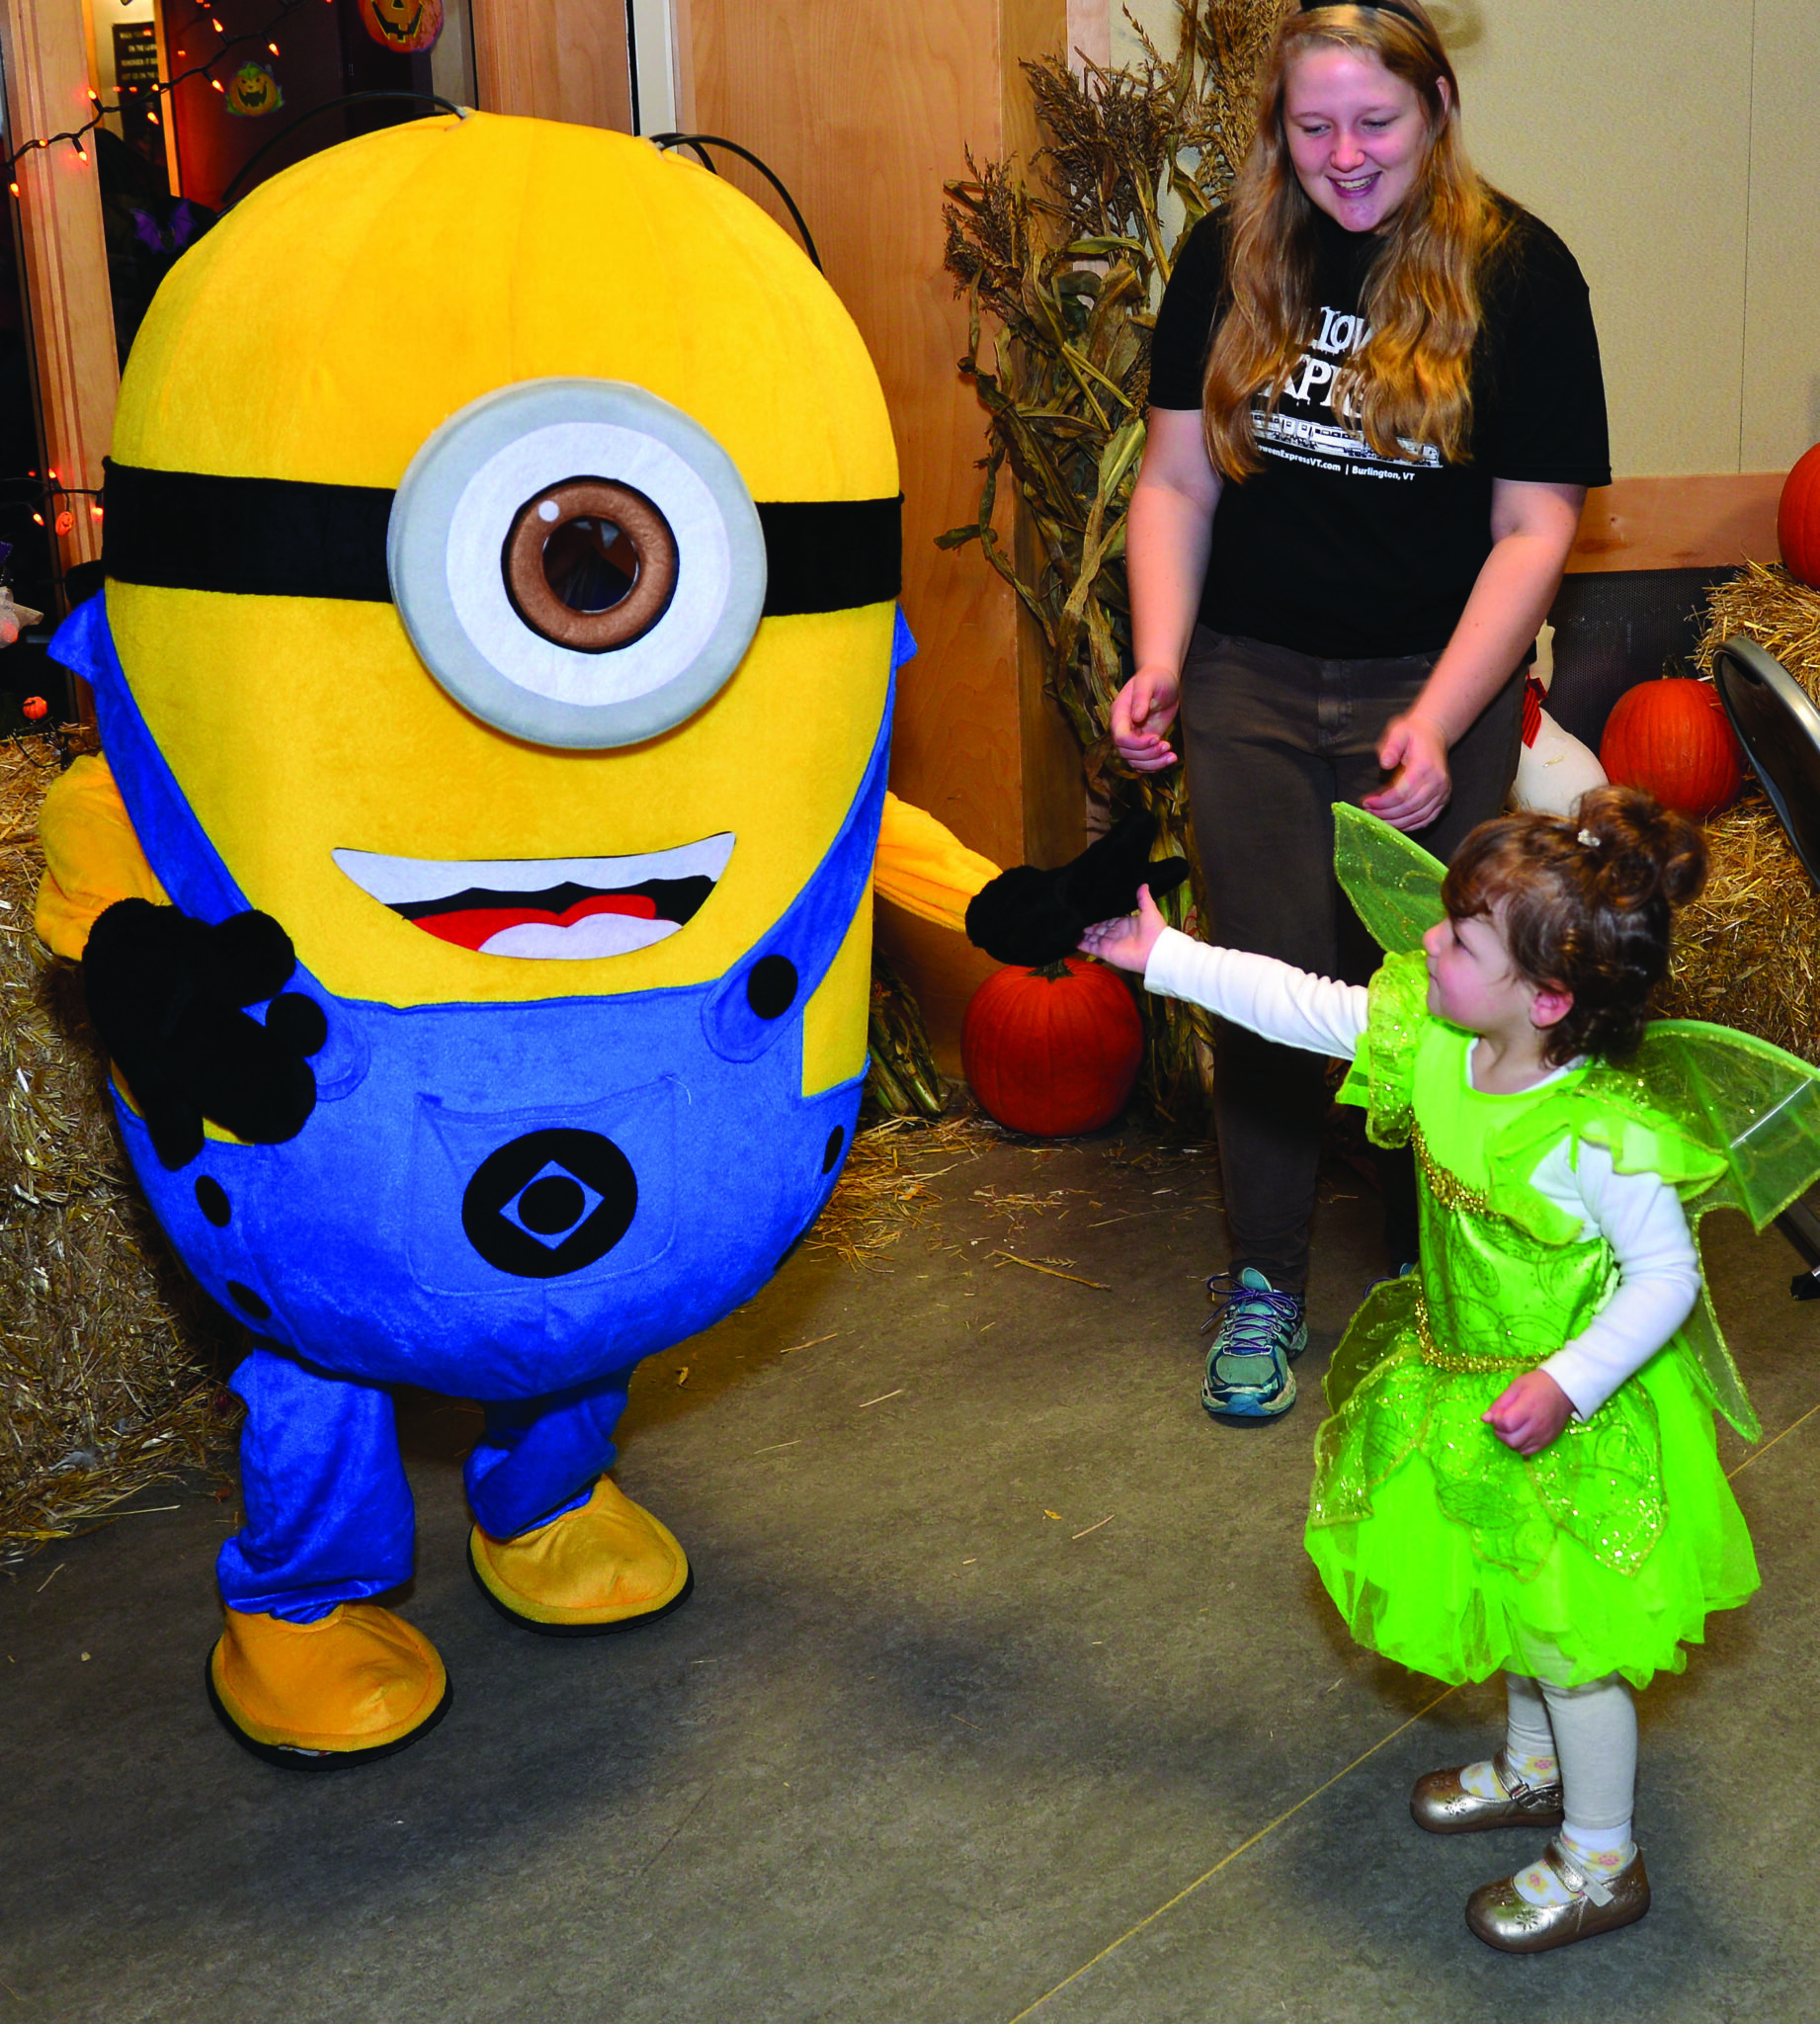 magical moments at the halloween express — williston observer